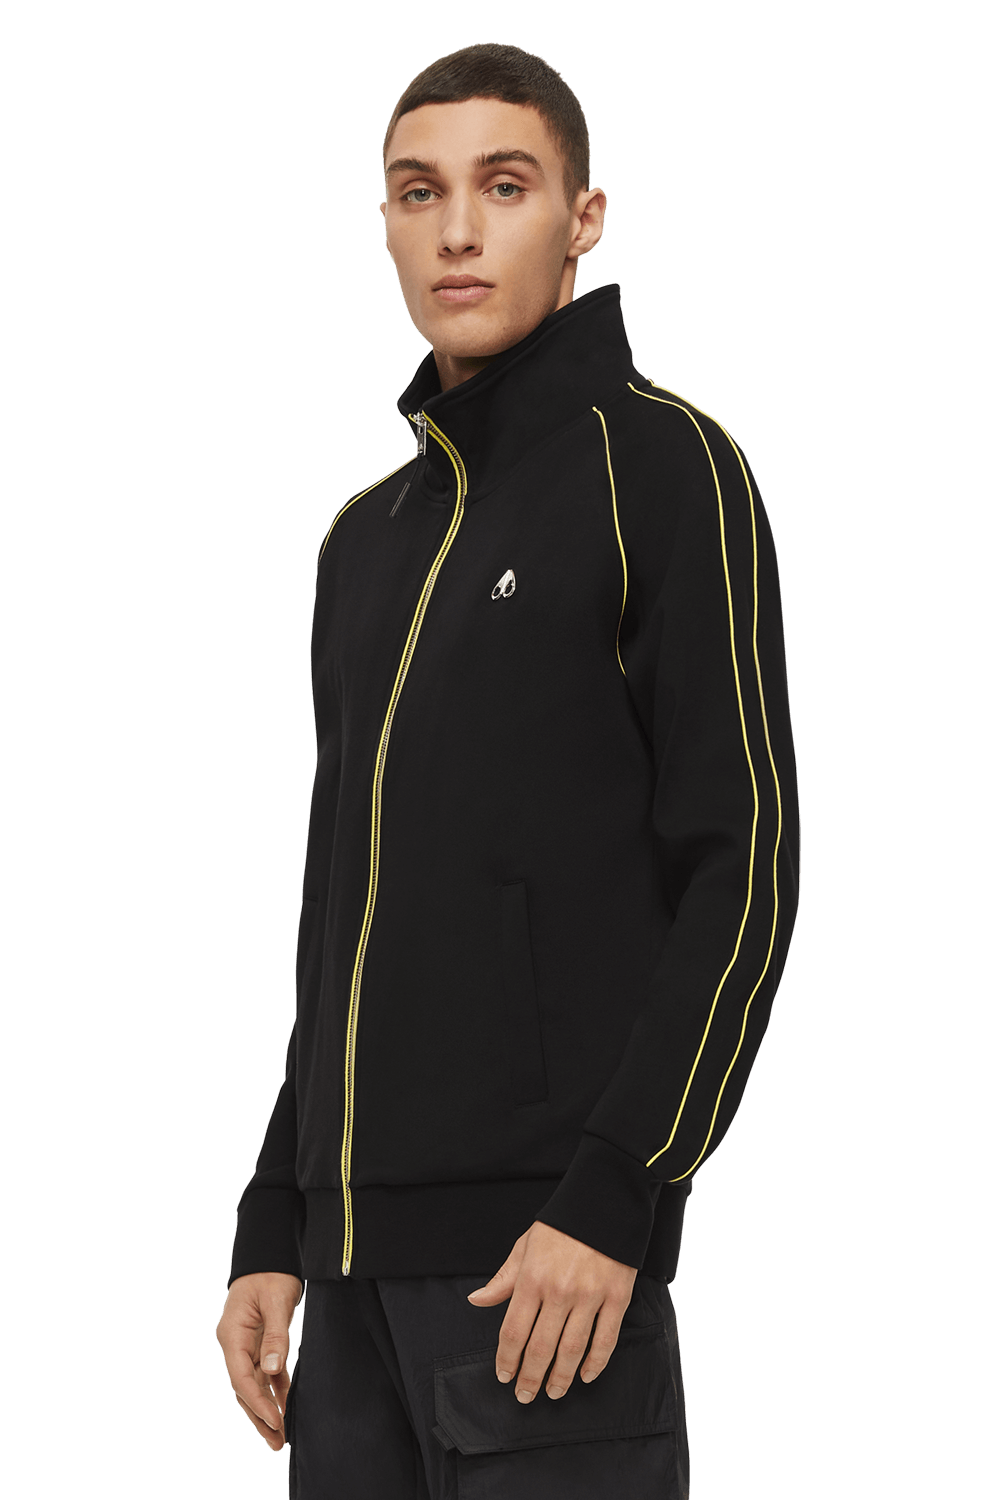 Stereogram Zip Up M11MS620 Black Front